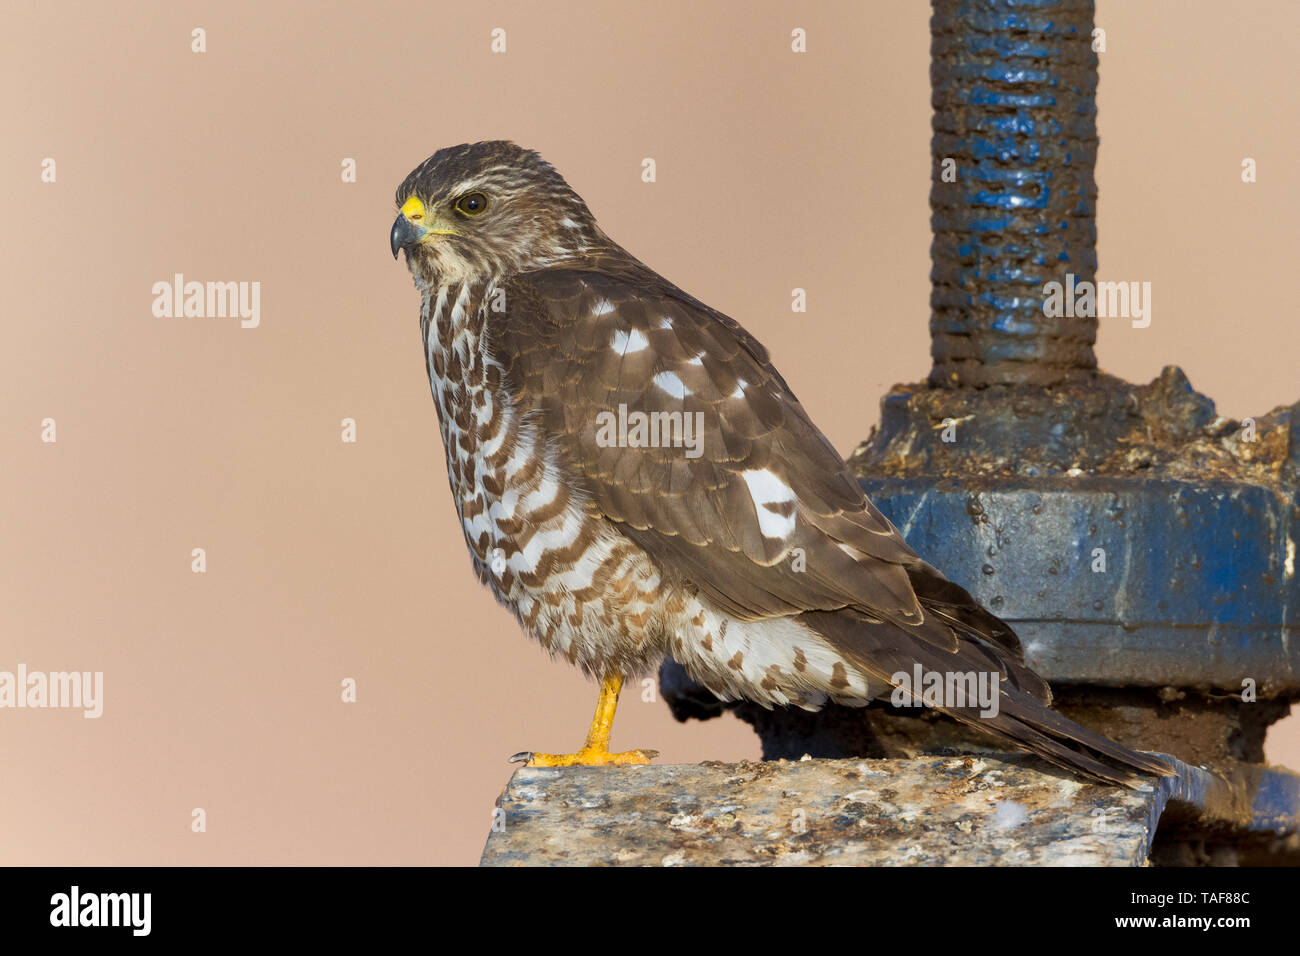 Levant Sparrowhawk (Accipiter brevipes), juvenile standing on a sluice, South Sinai Governorate, Egypt - Stock Image